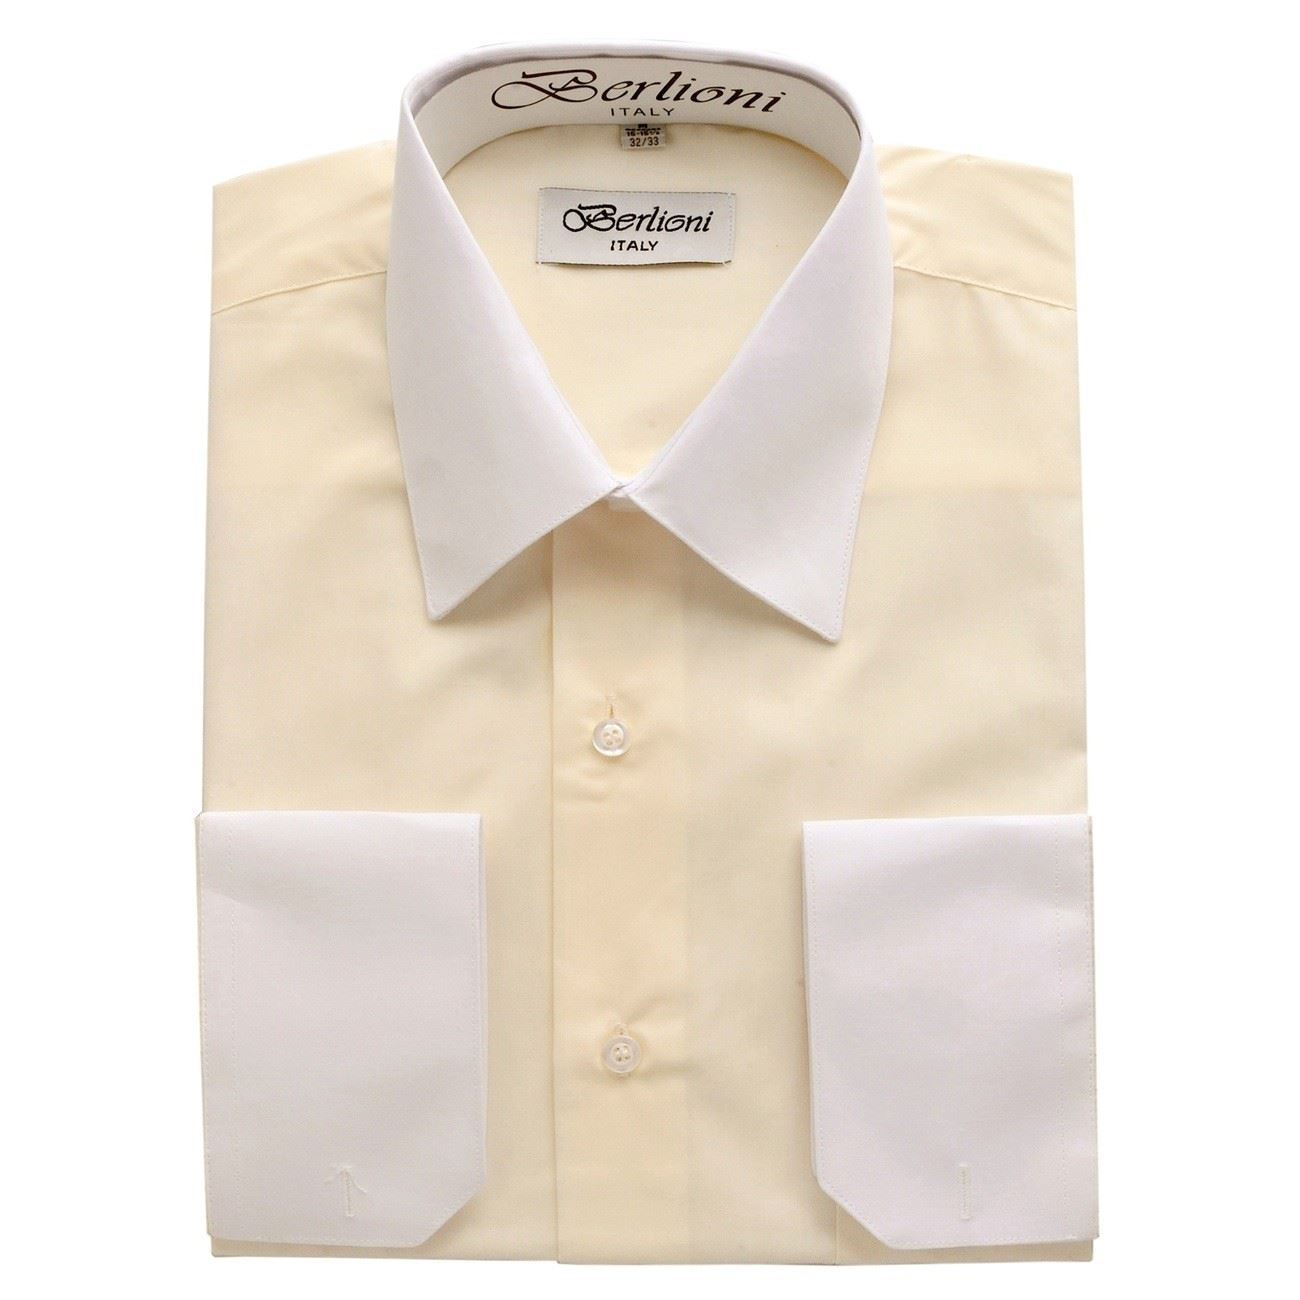 f70cadeb816 Details about NEW BERLIONI ITALY TWO TONE MEN S DRESS SHIRT FRENCH  CONVERTIBLE CUFF OFF WHITE